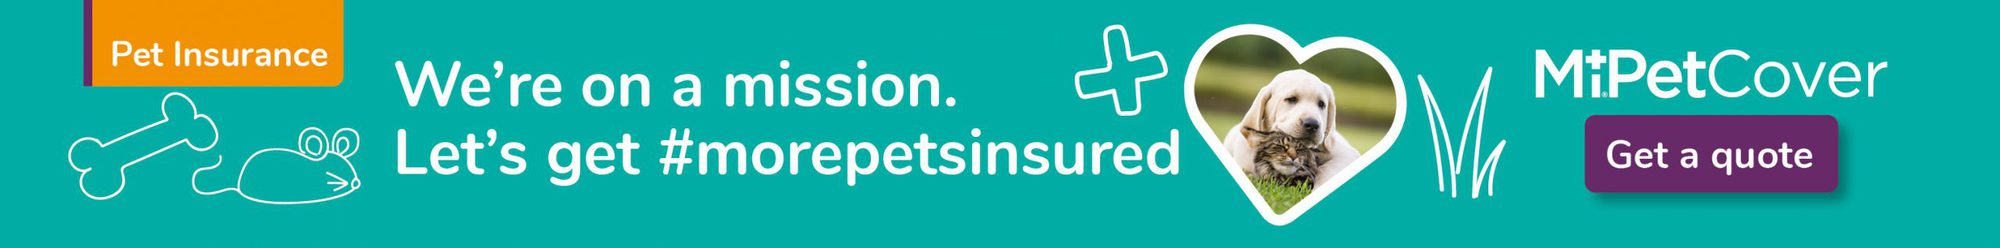 Let's get #morepetsinsured - get a quote for pet insurance today